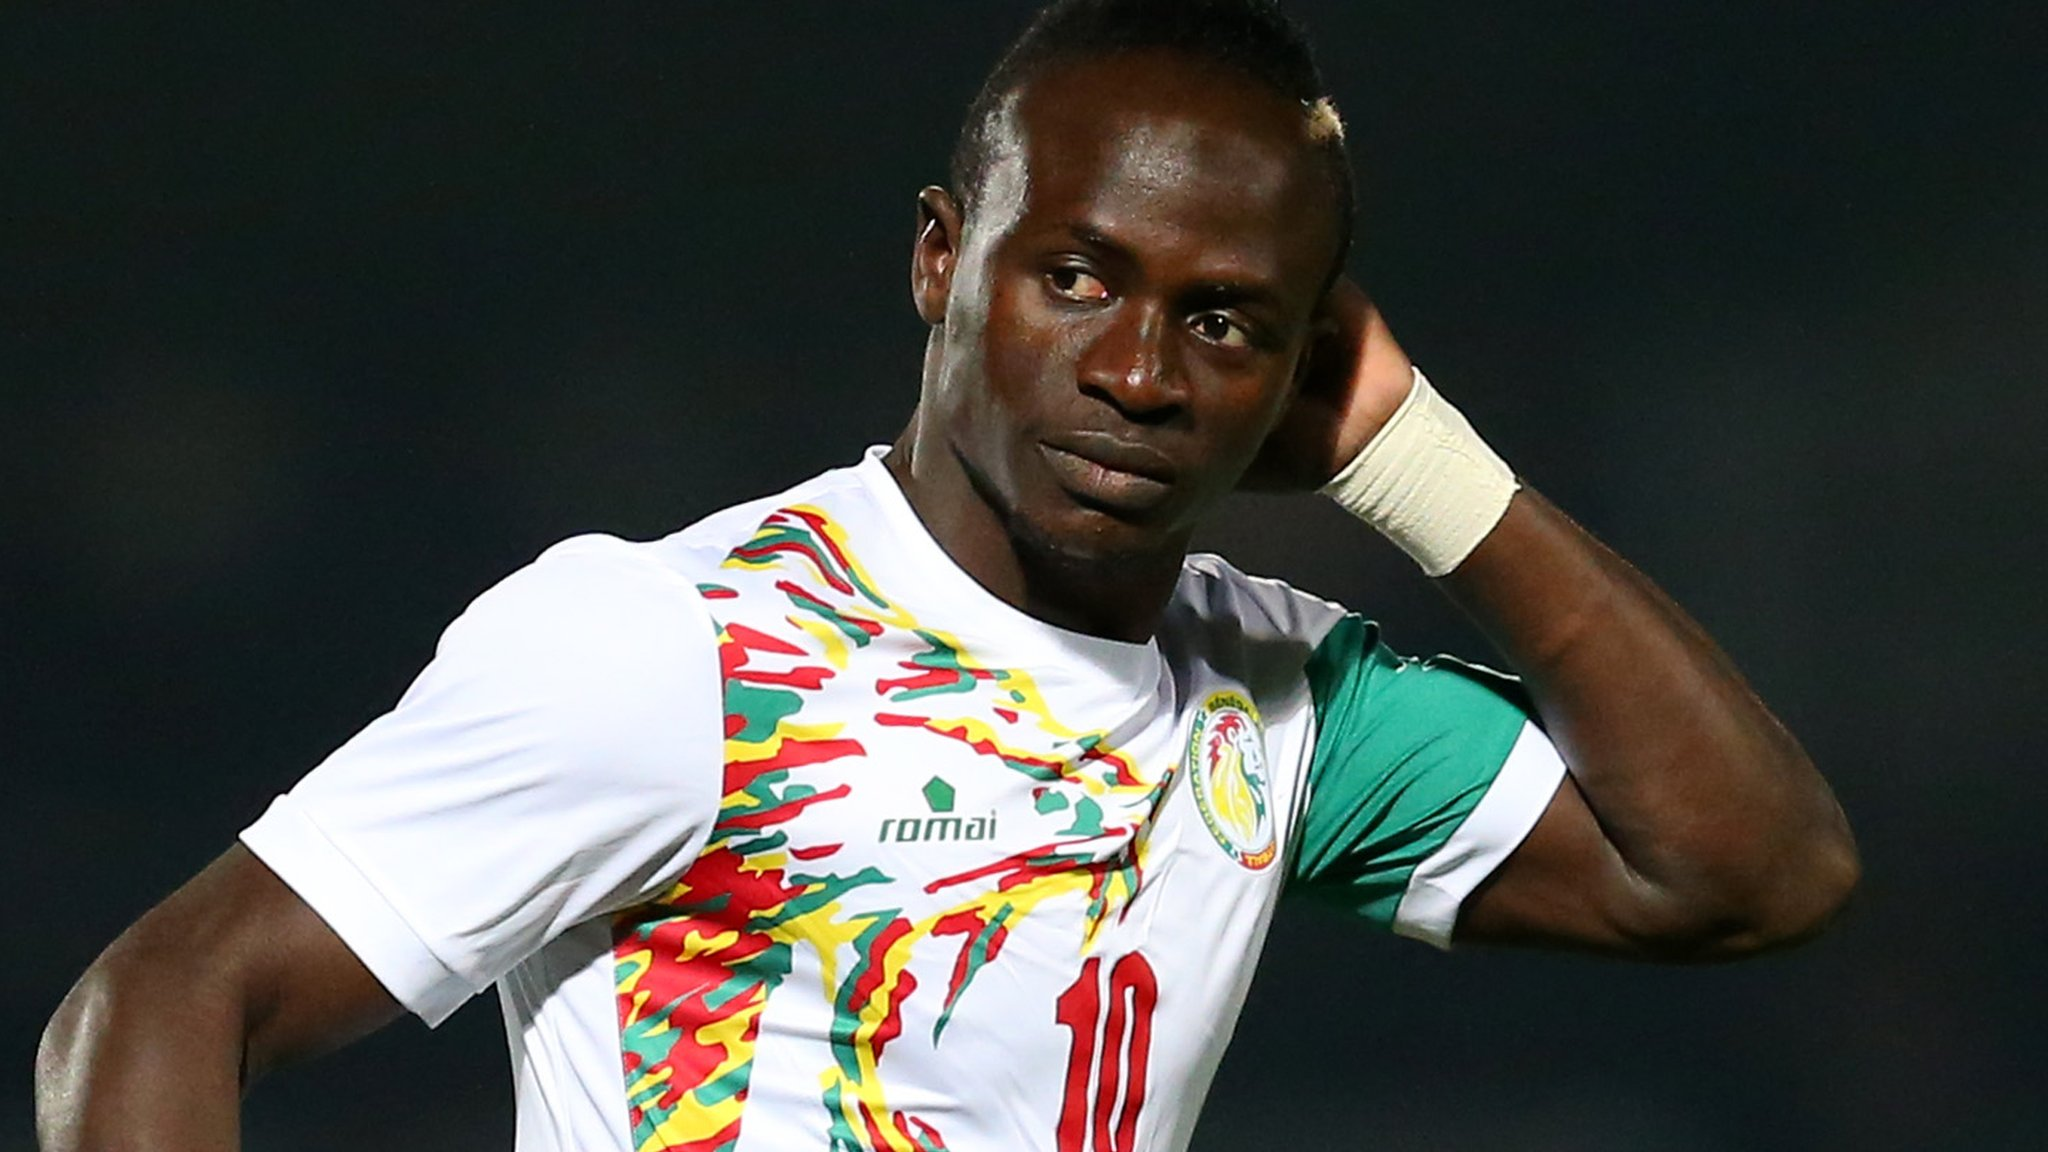 Mane is 'one of the world's best' - Senegal coach